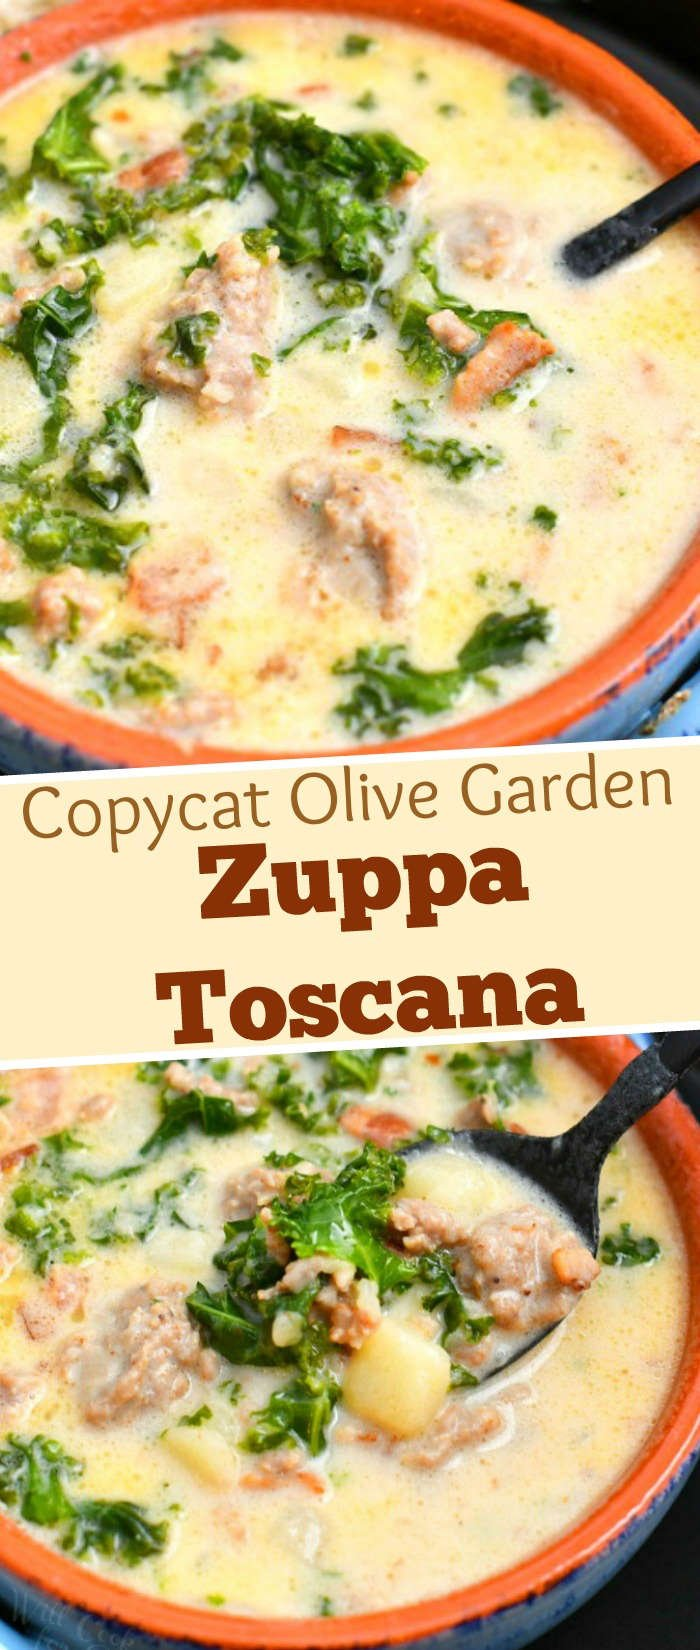 titled photo collage shows bowls of Zuppa Toscana soup